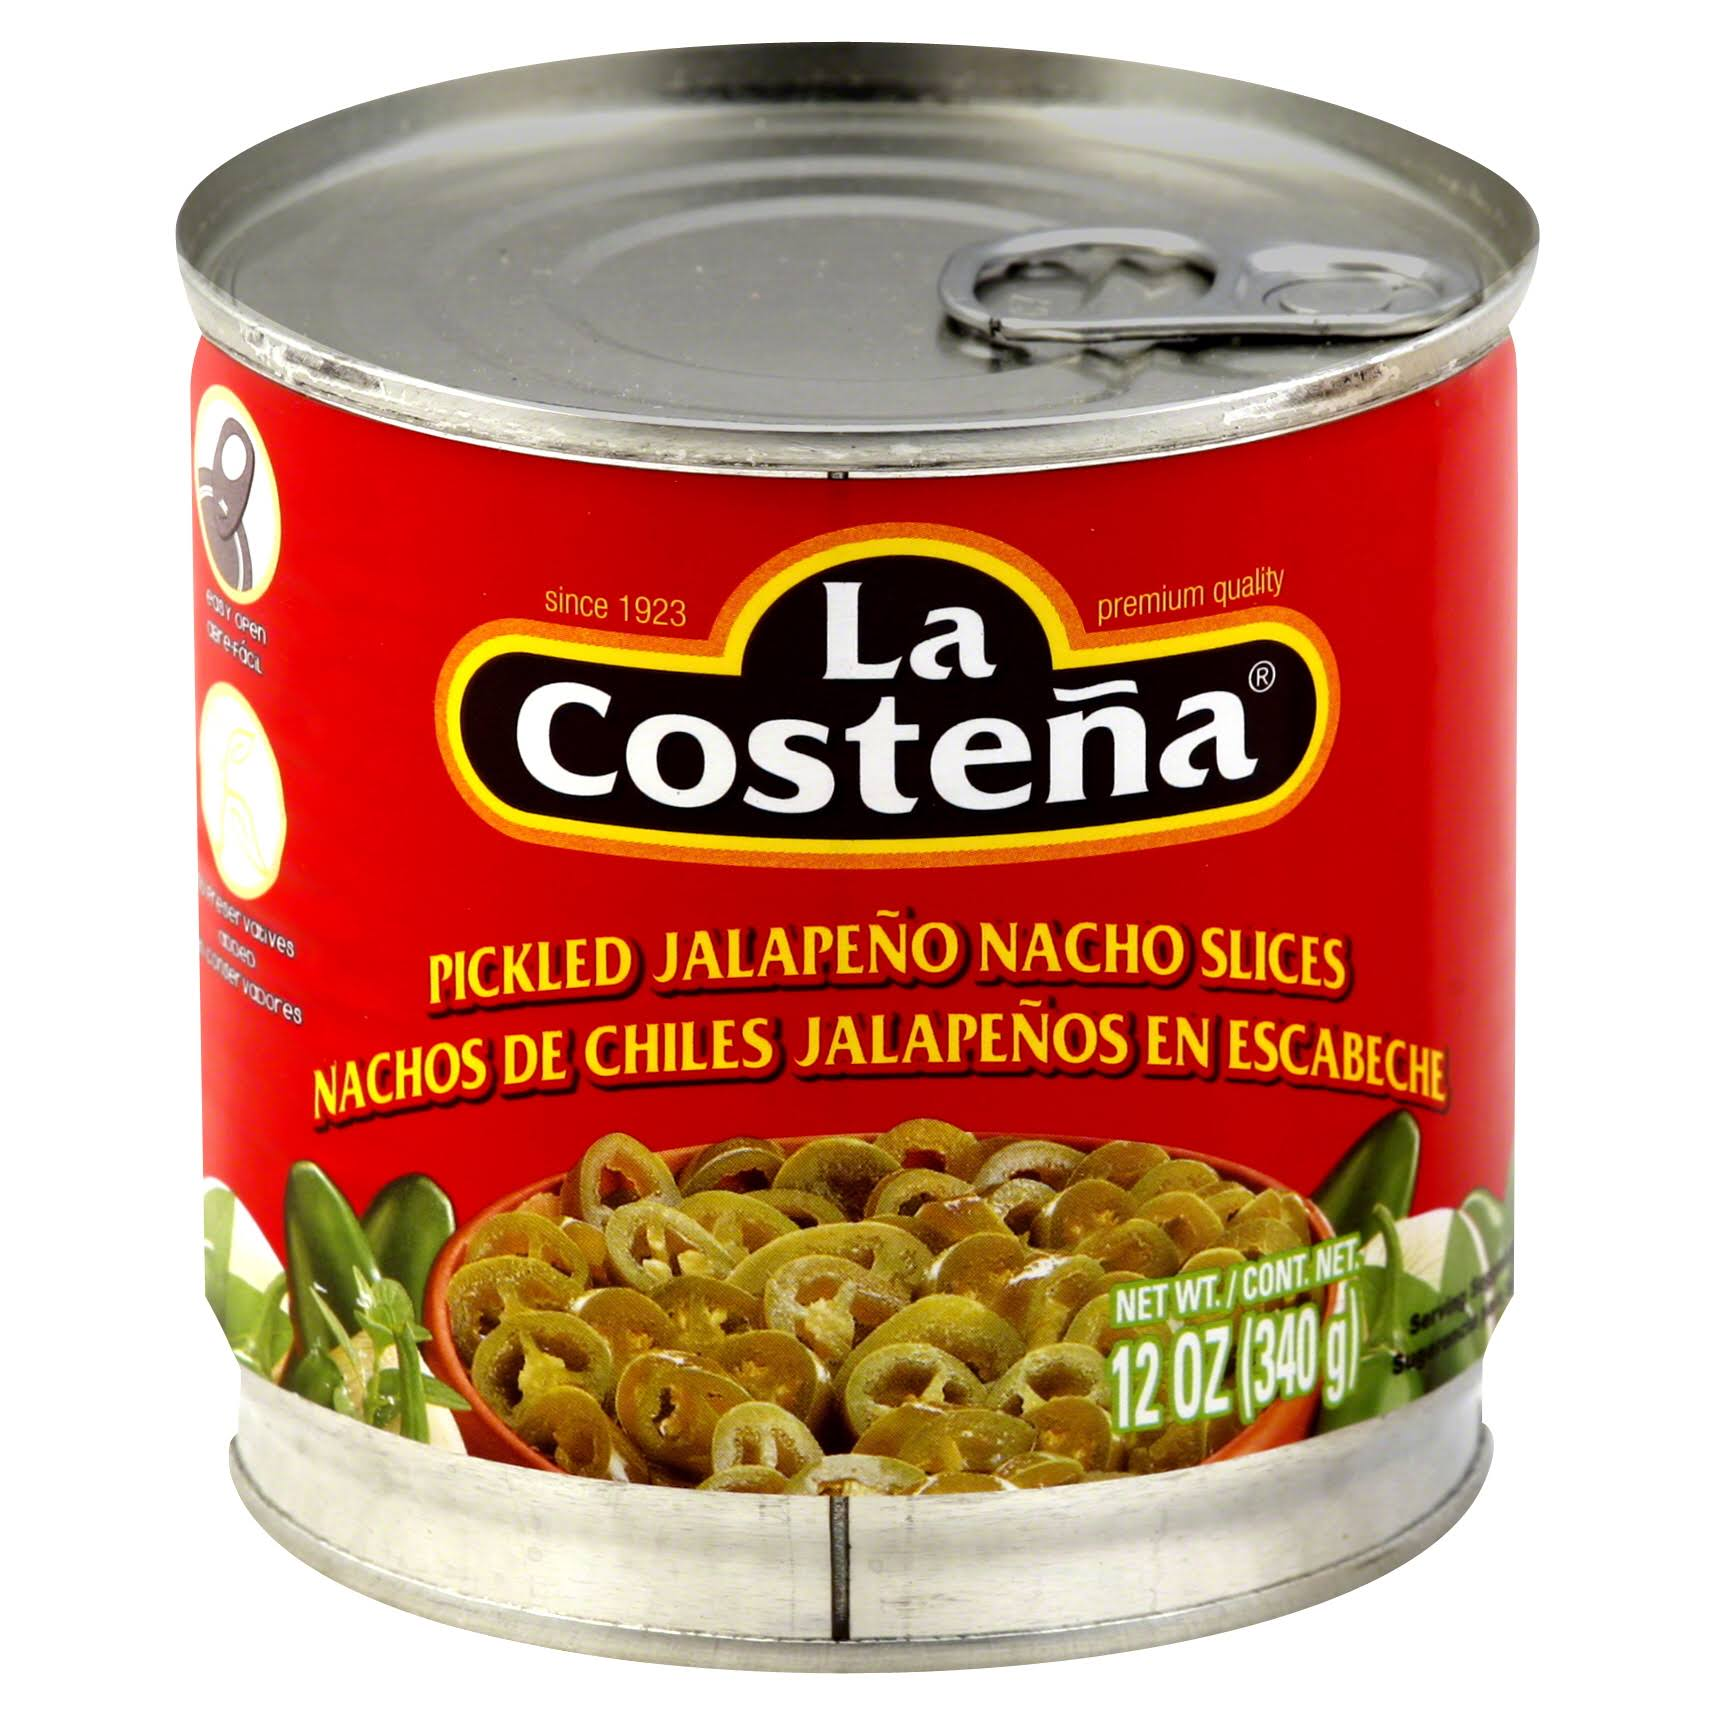 La Costeña Pickled Jalapeño Nacho Slices - 12oz